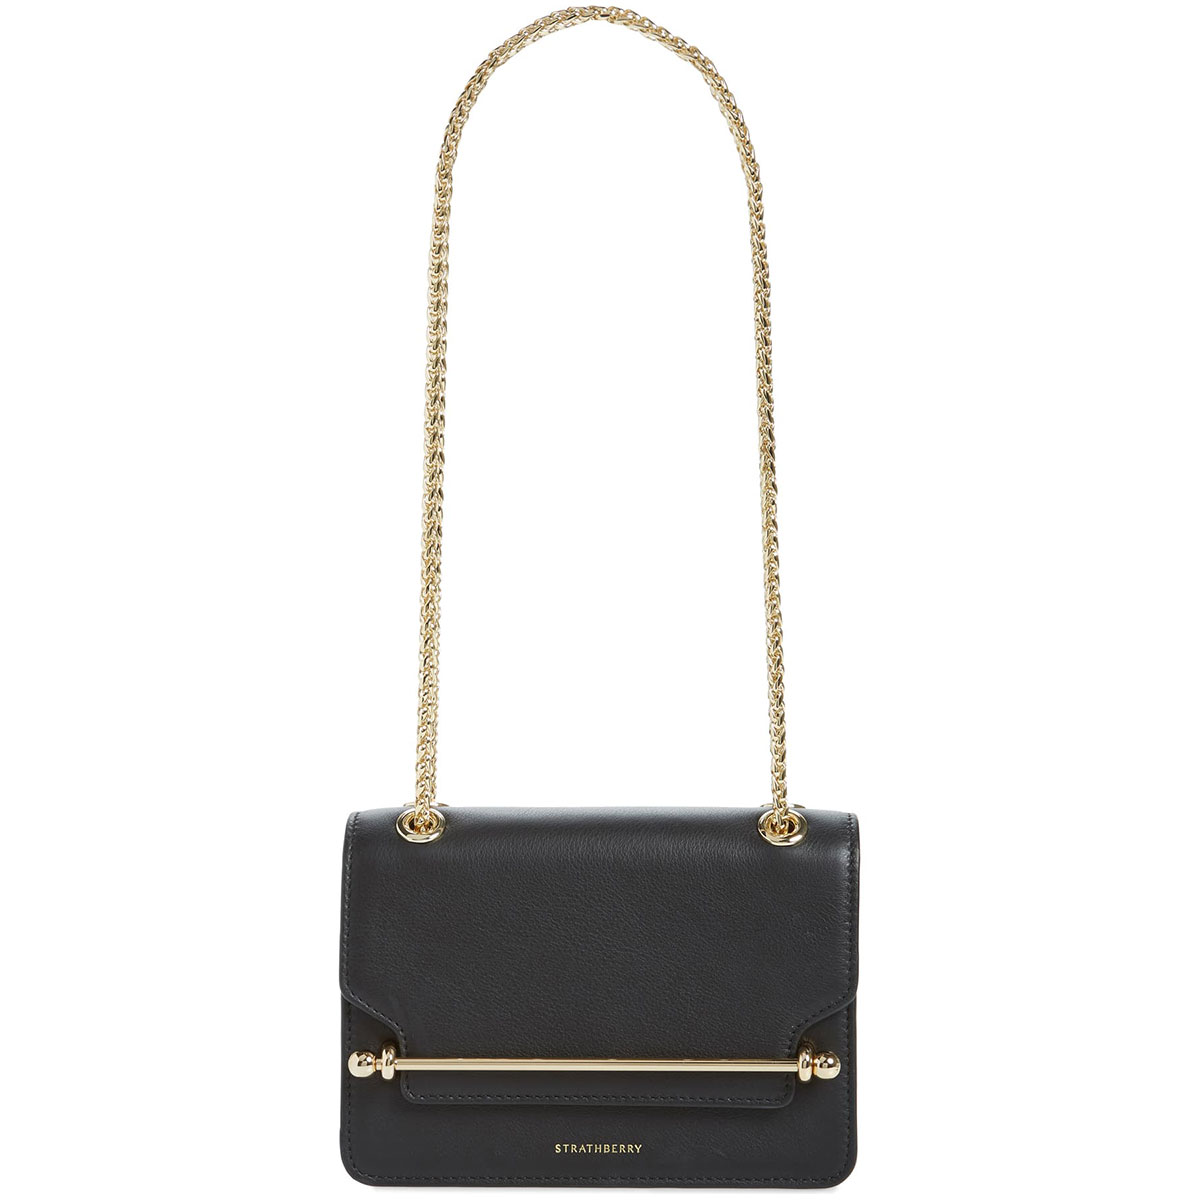 Strathberry Mini East/West Black Leather Crossbody Bag